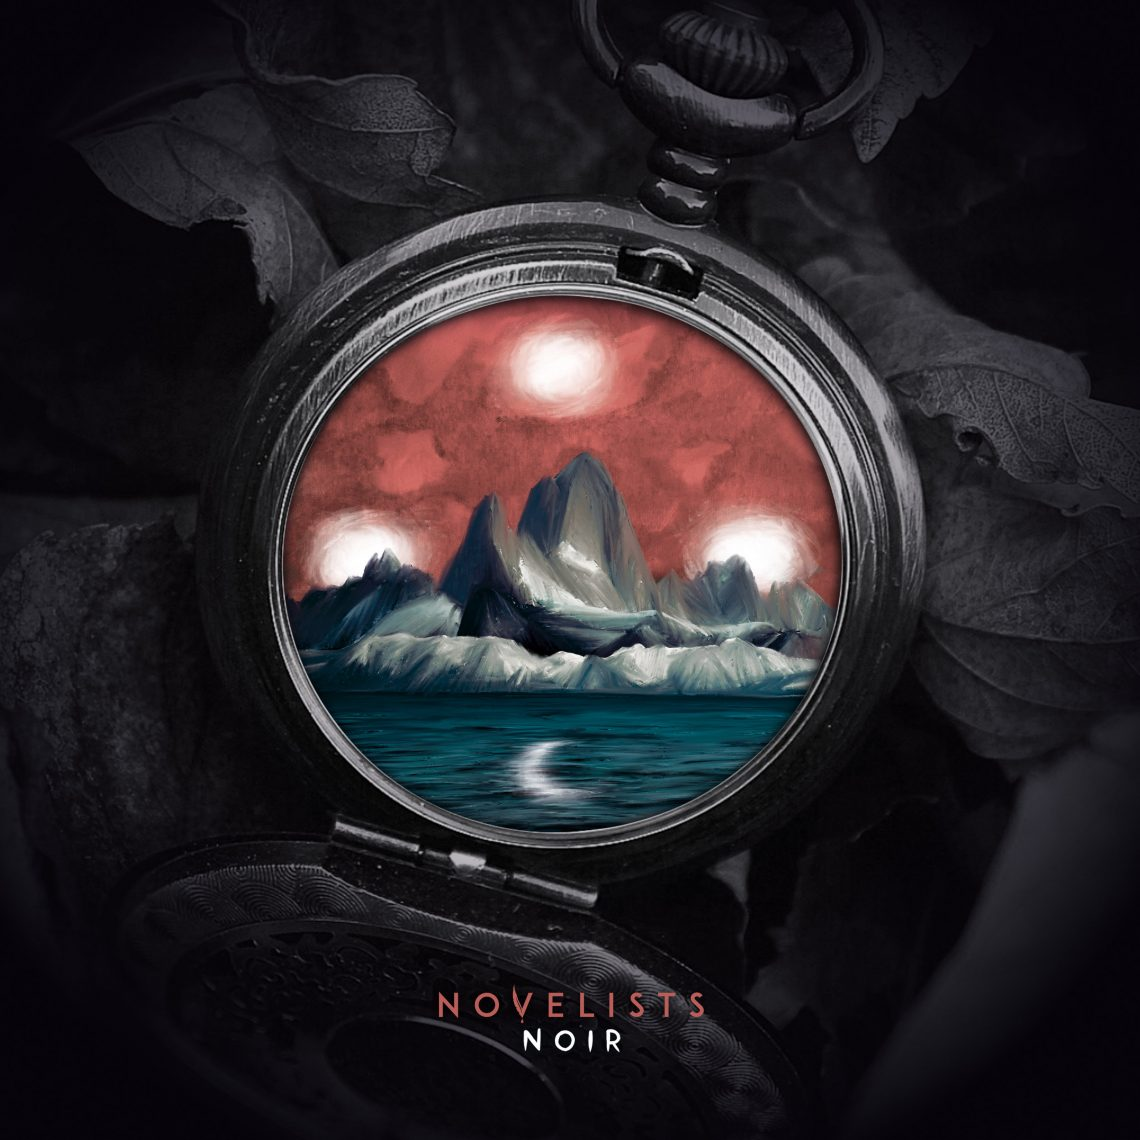 Noir – Novelists Album Review